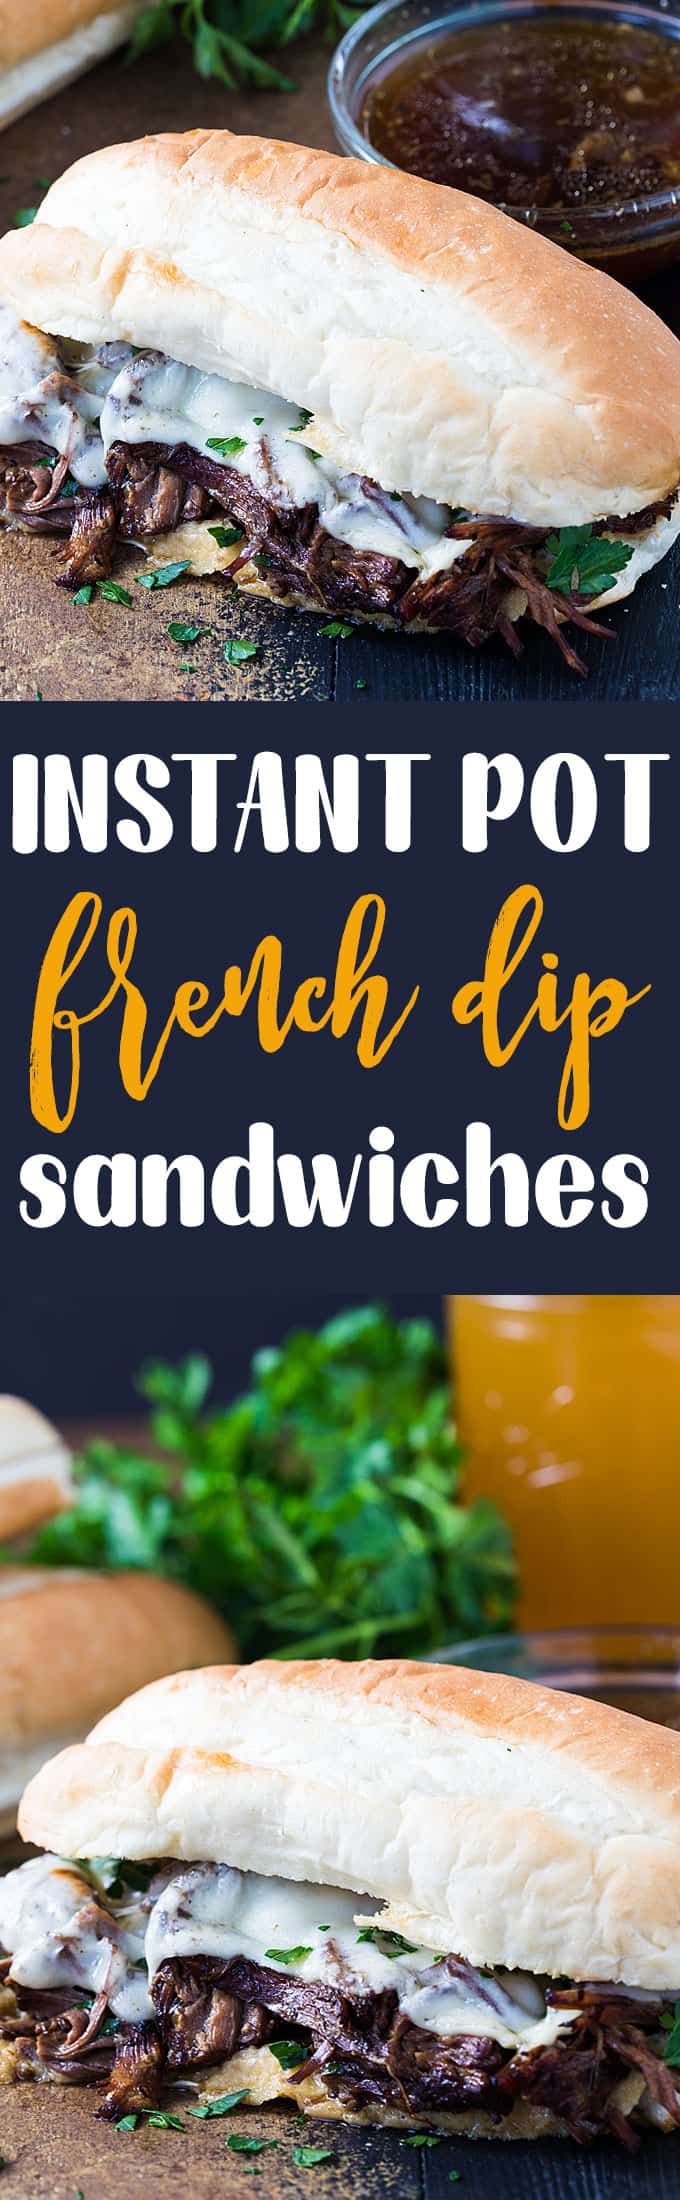 Instant Pot French Dip Sandwiches - Incredibly tender, savory and flavor-packed french dip sandwiches prepared in your pressure cooker!